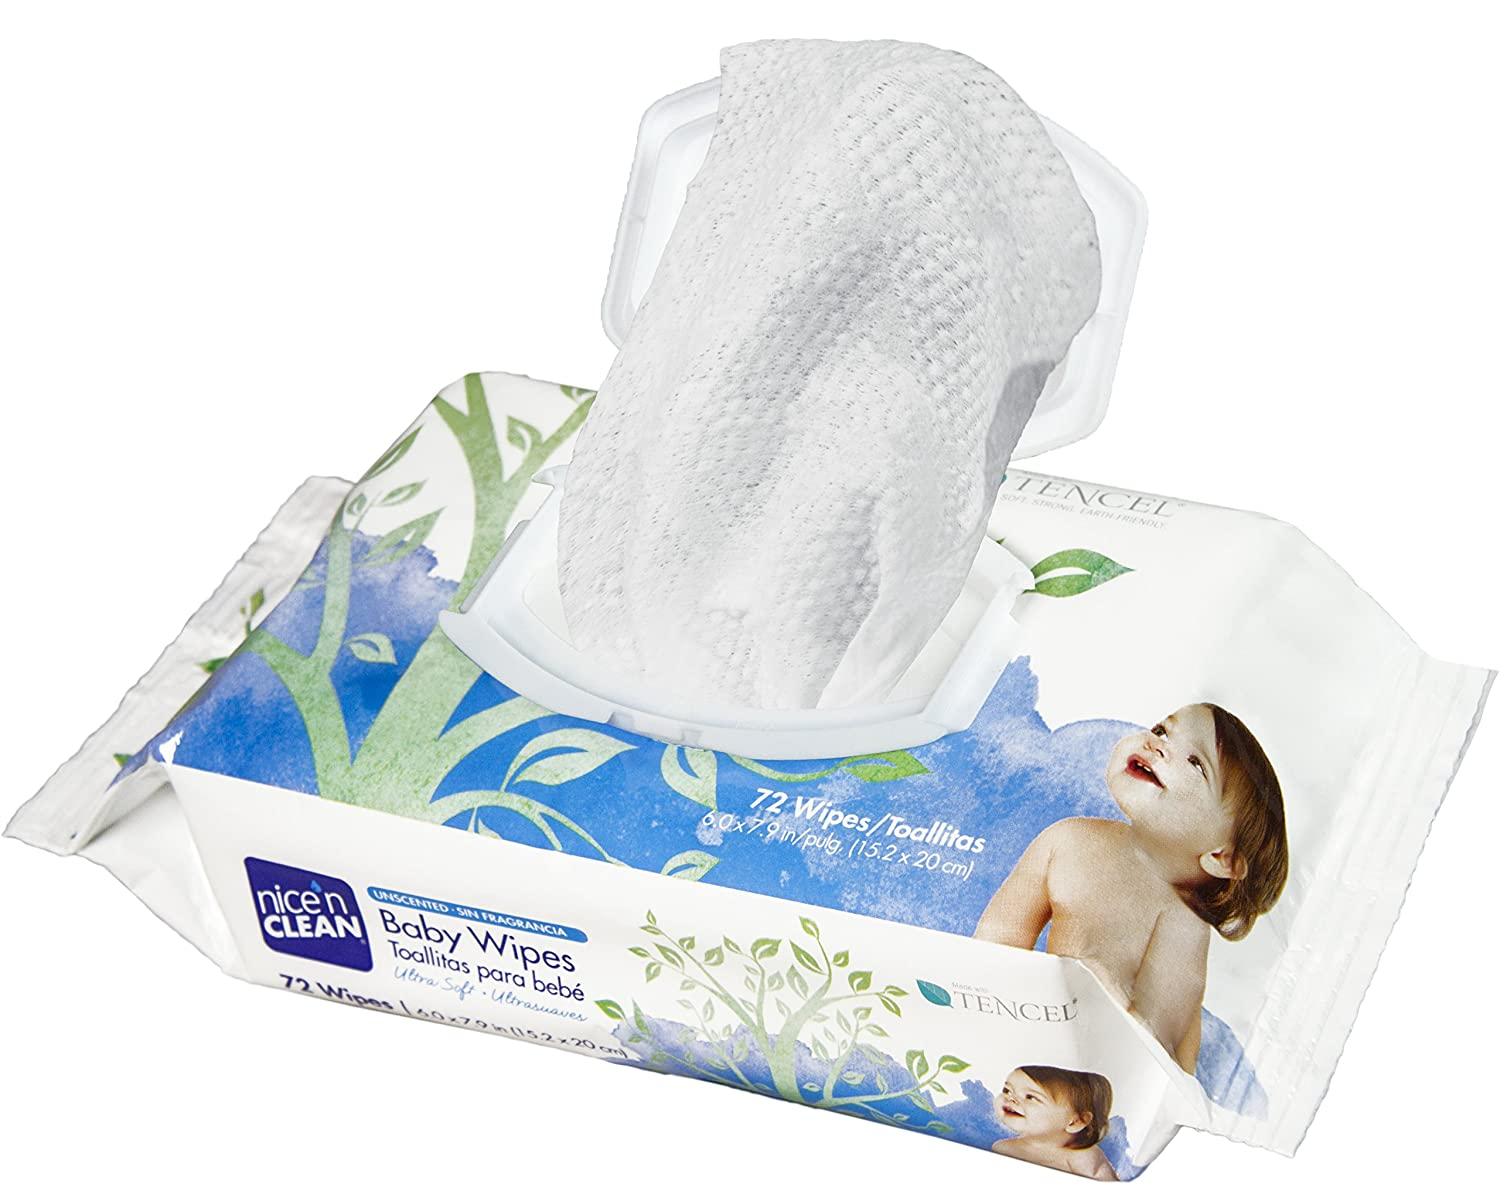 Amazon.com: Nice n Clean Unscented Baby Wipes, 72 Count: Health & Personal Care